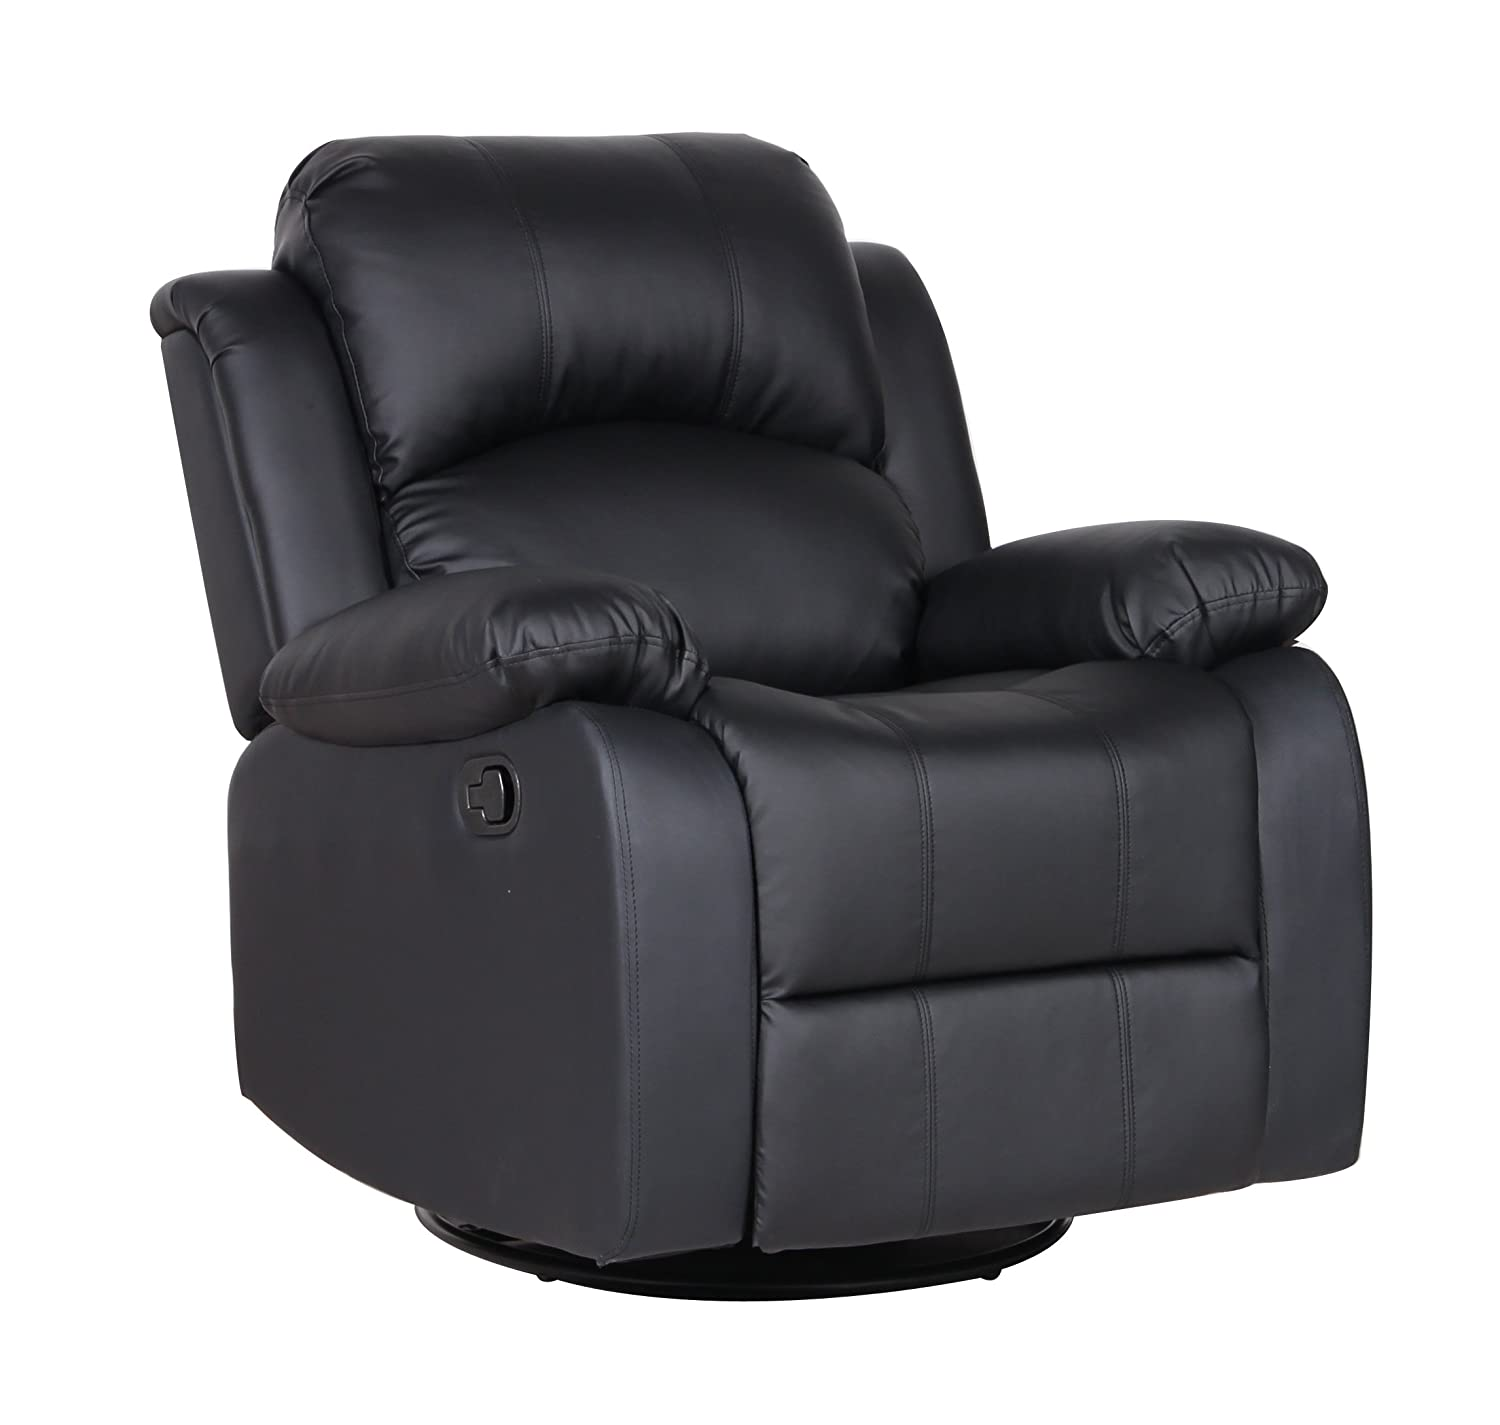 swivel recliner chairs best swivel recliner chairs swivel recliner chair best swivel recliner  sc 1 st  Comfortable recliner.com & Swivel recliner chairs: what to look out for - Comfortable ... islam-shia.org